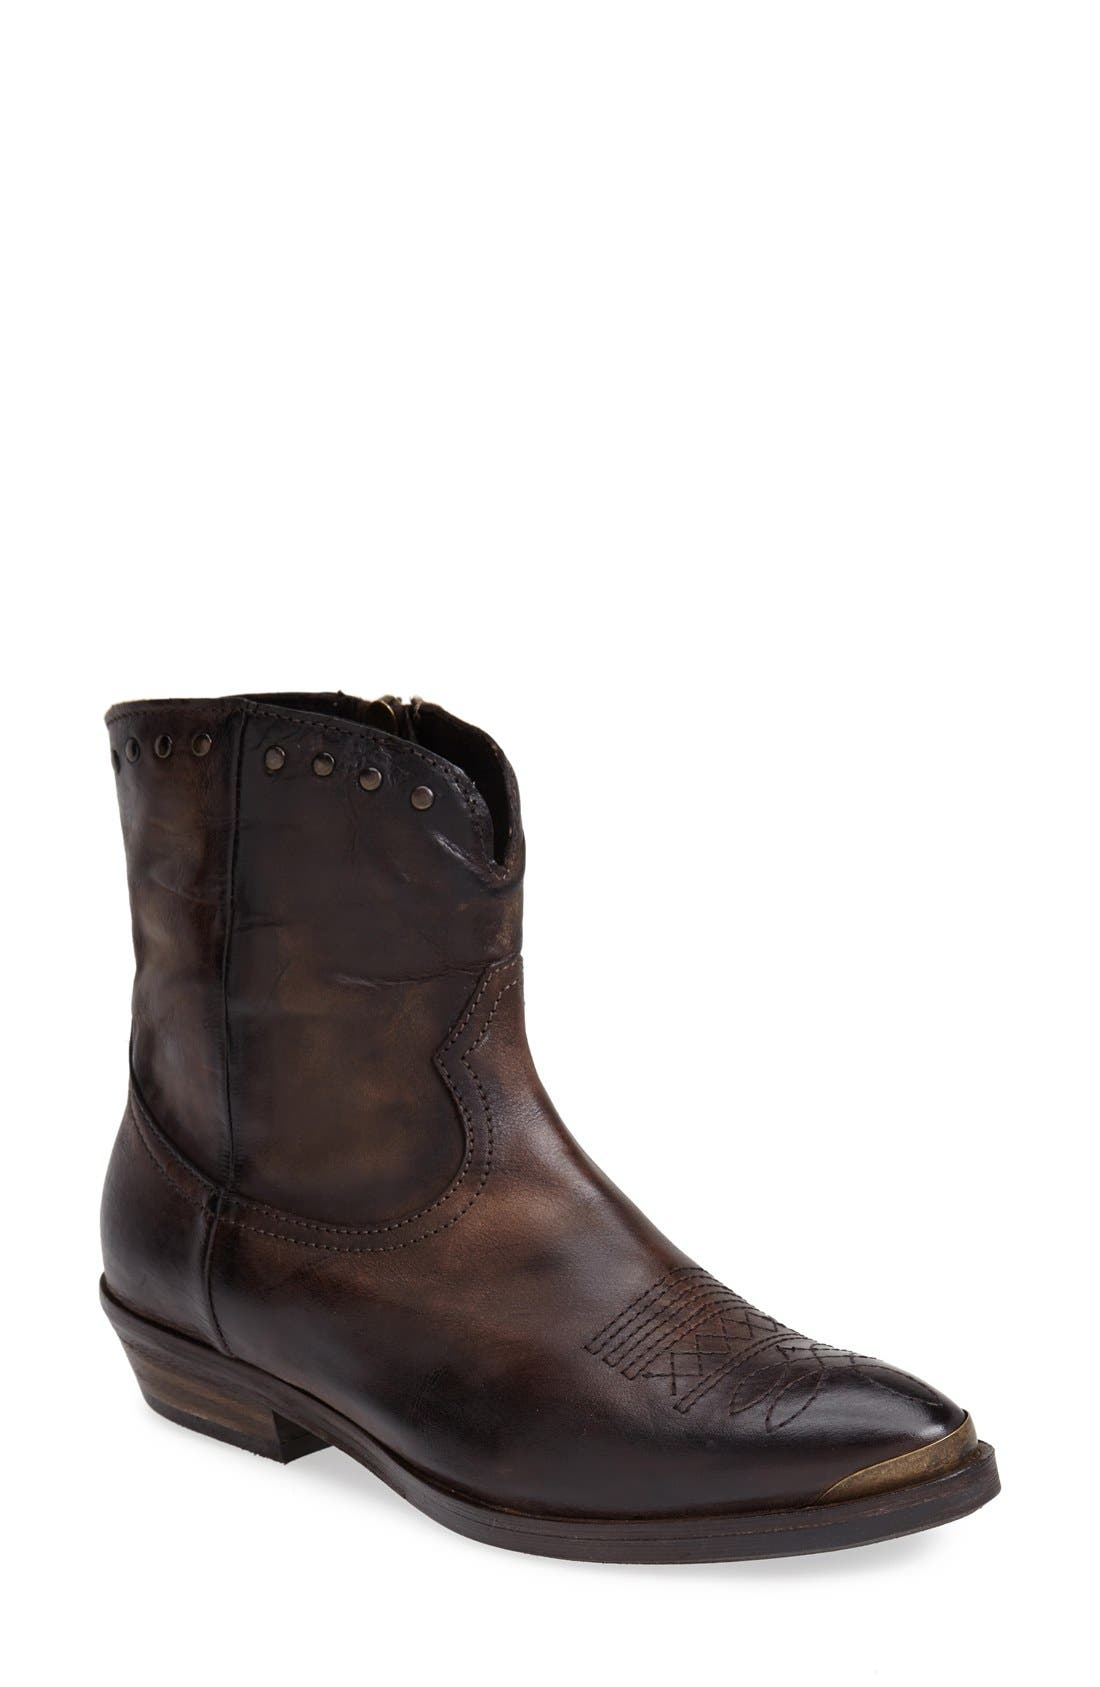 Main Image - KBR Low Shaft Leather Boot (Women)